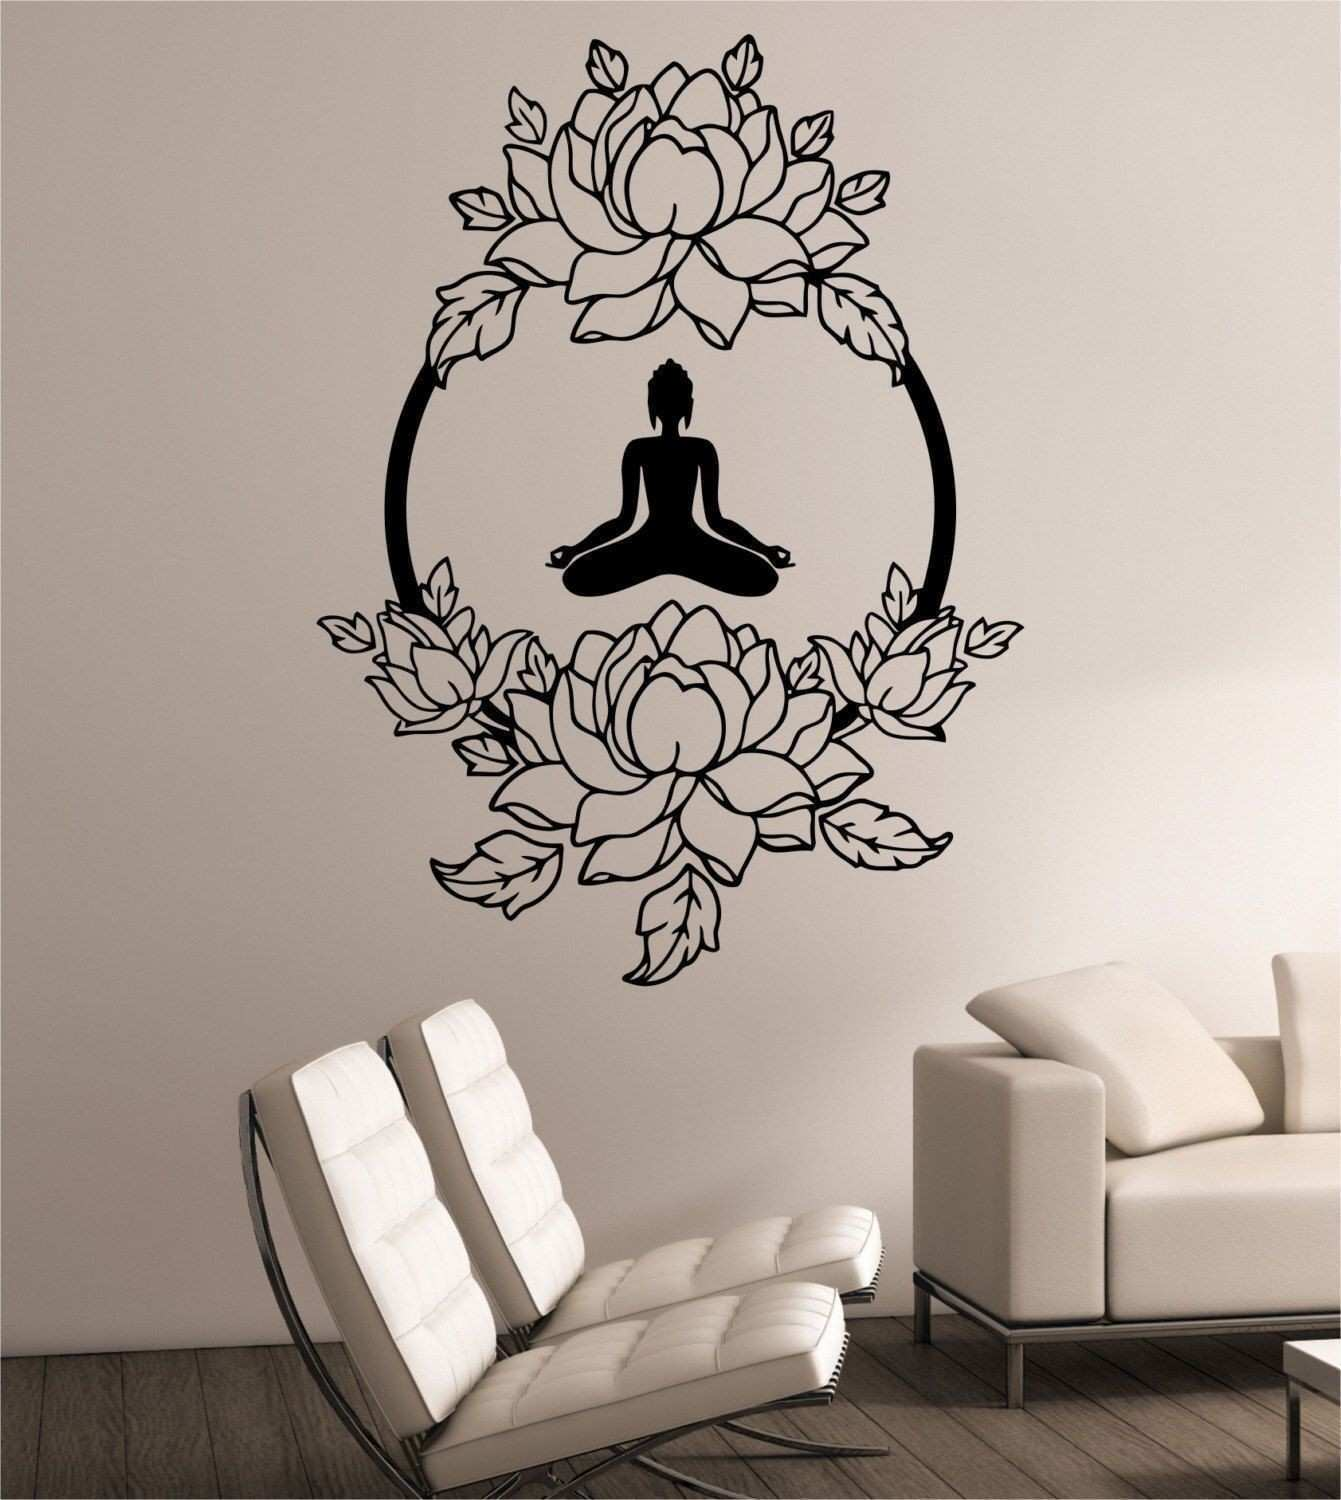 Exceptional How To Decorate My Living Room Walls At Wall Decal